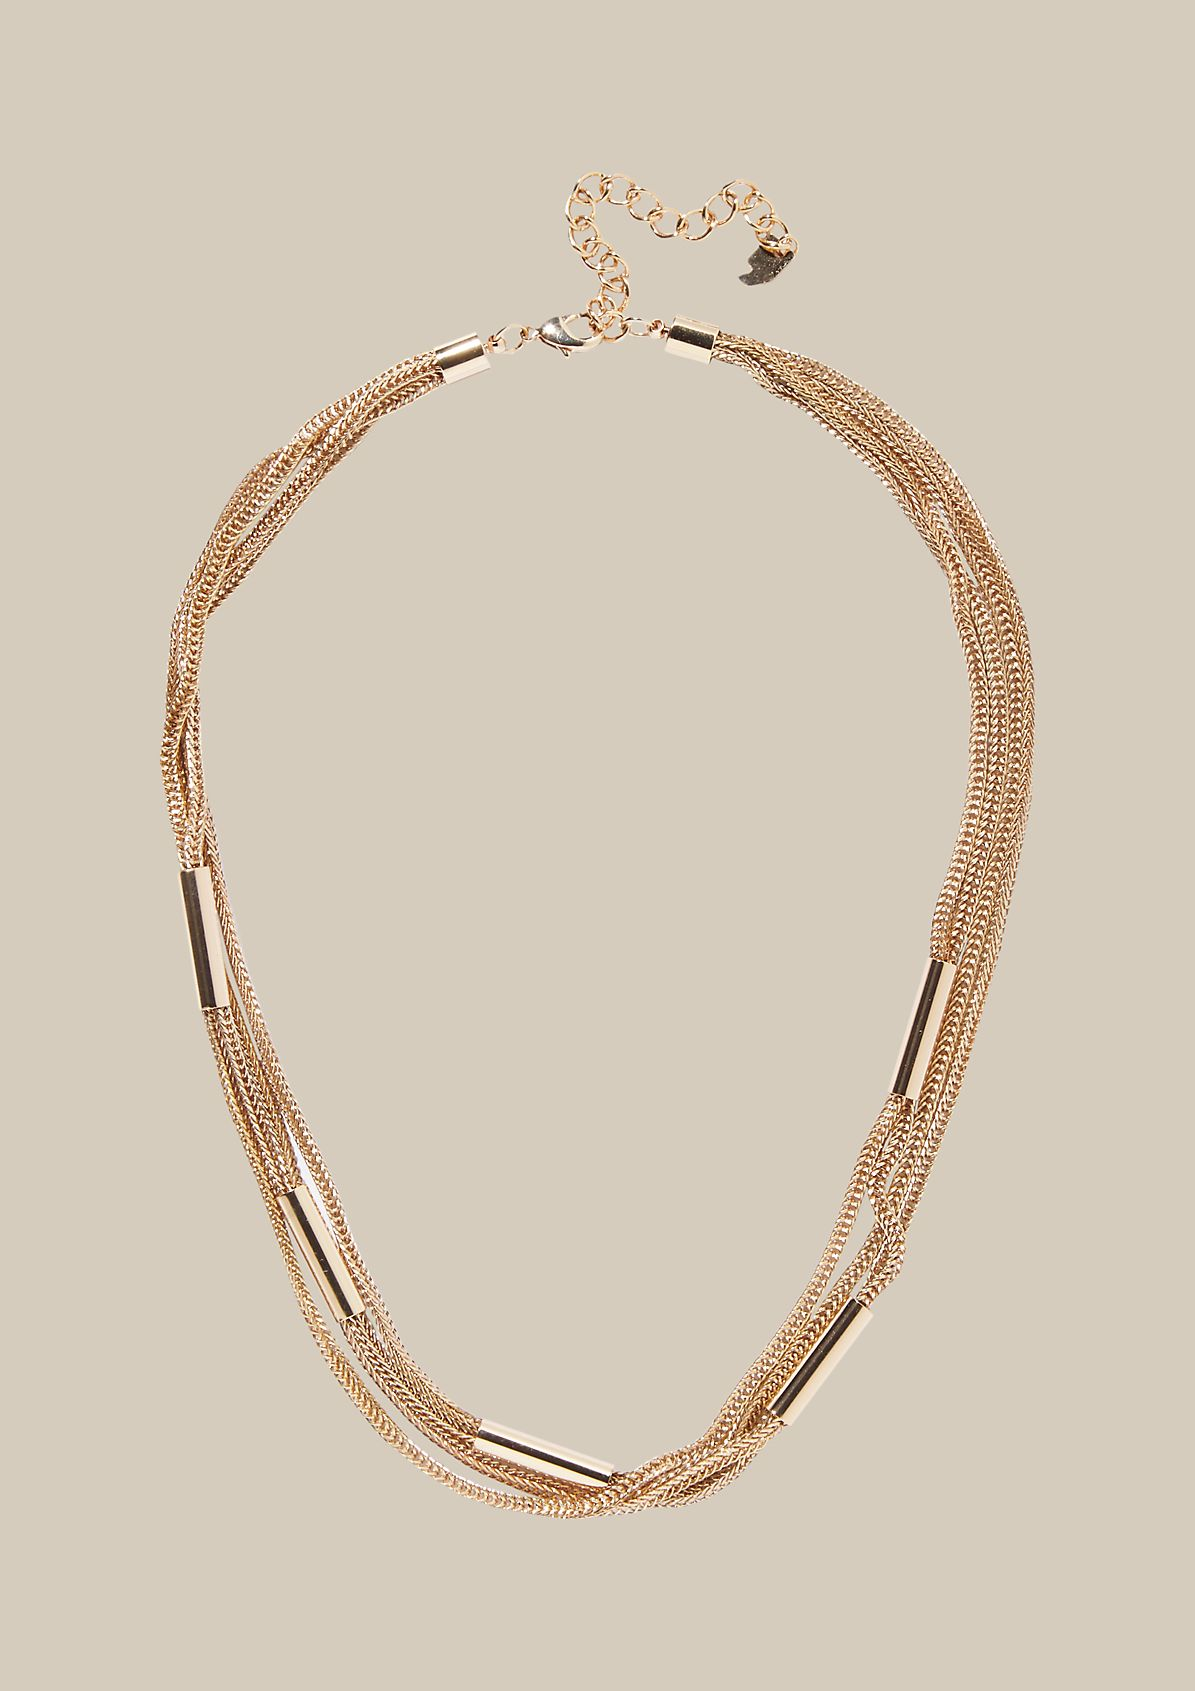 Elegant necklace with decorative casings from s.Oliver